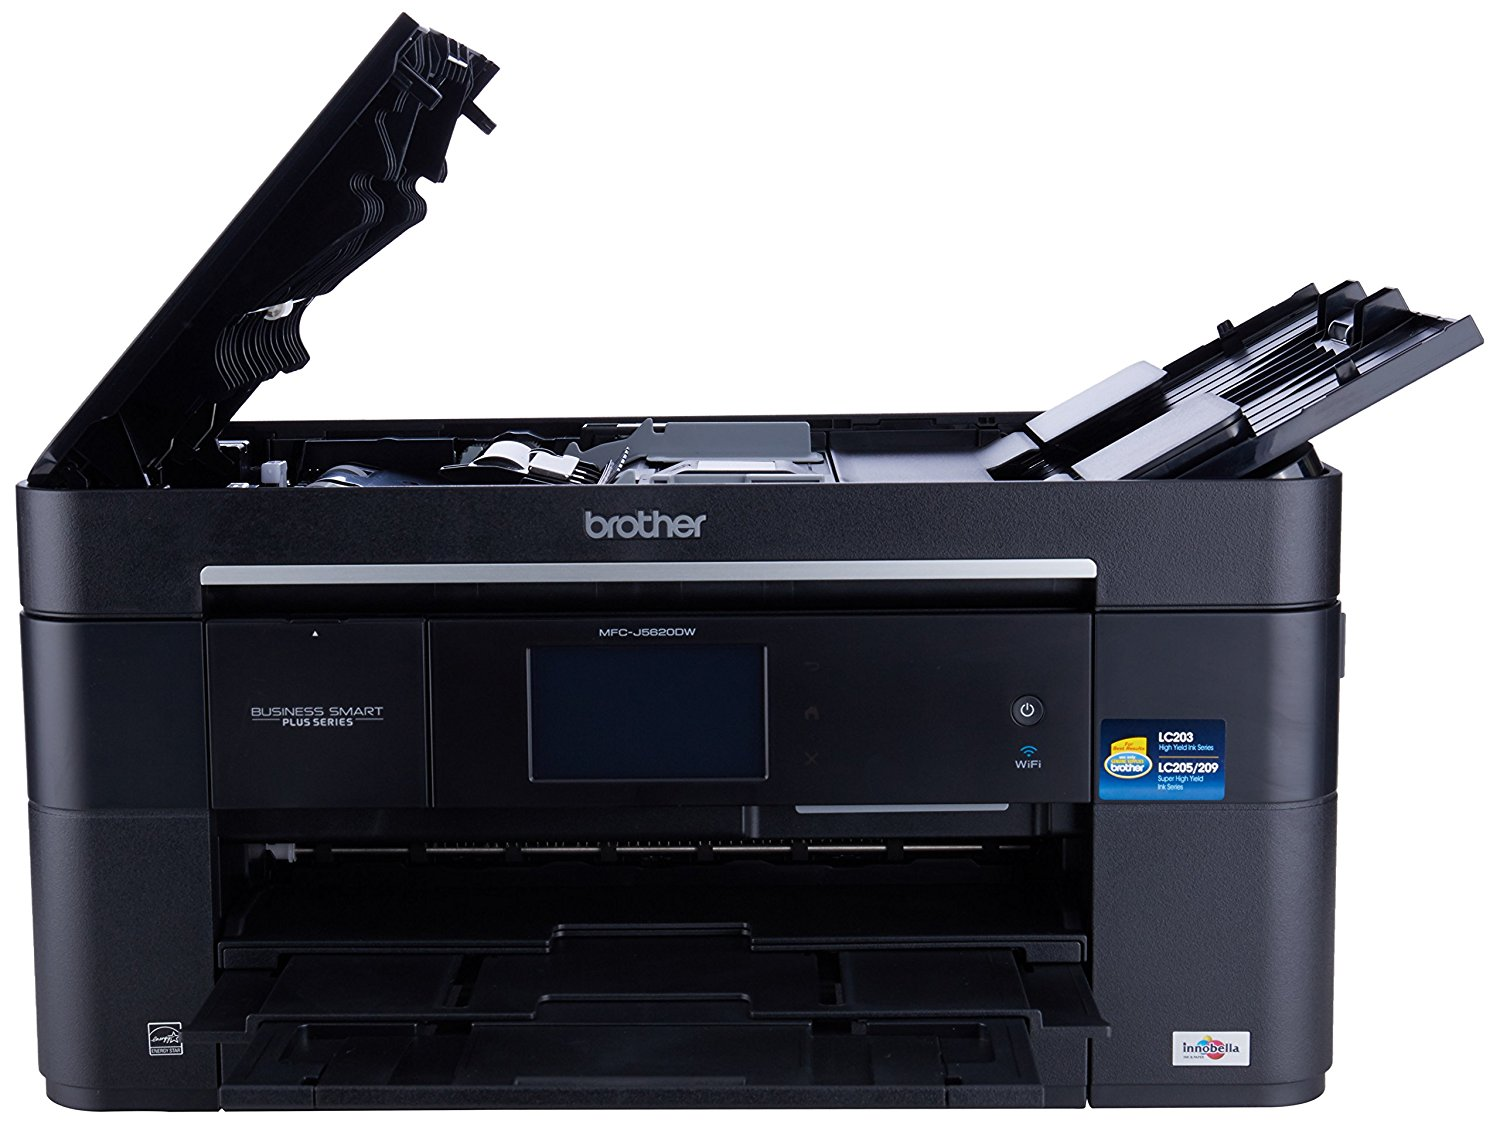 11x17 inkjet photo printer BibMe: Free Bibliography & Citation Maker - MLA, APA